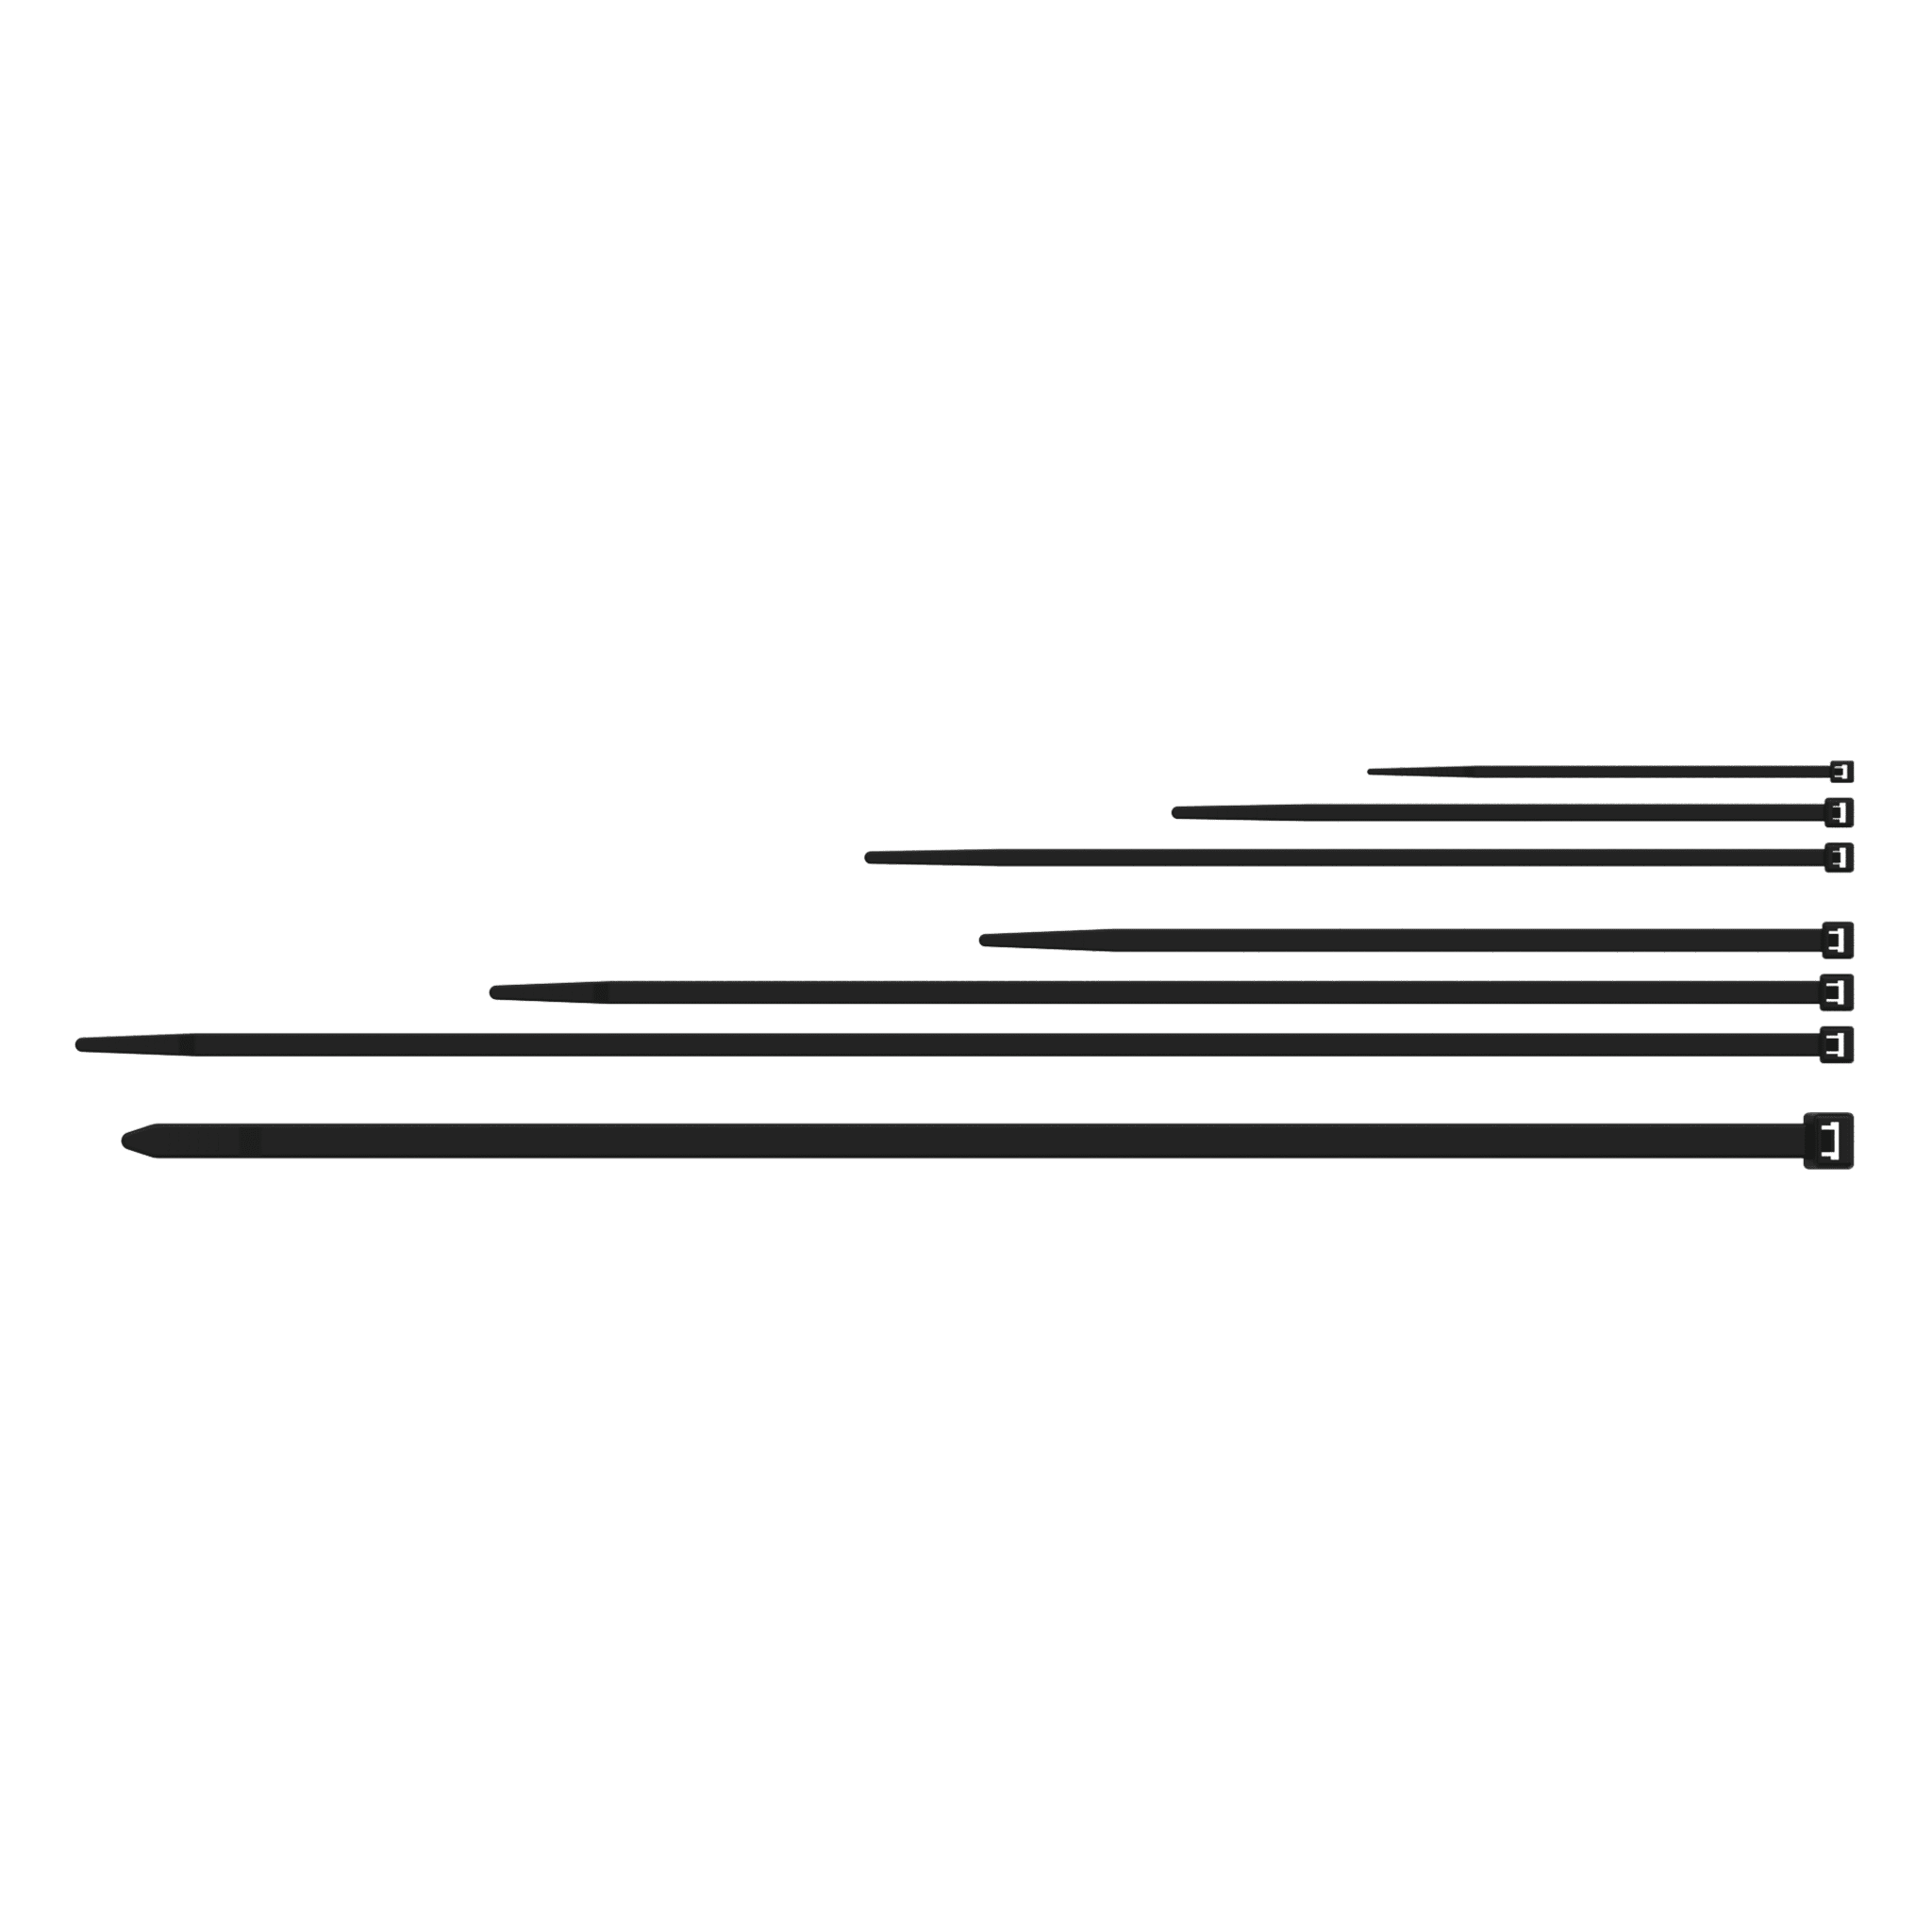 ACT418 - Nylon cable ties - 4.8 x 180 mm